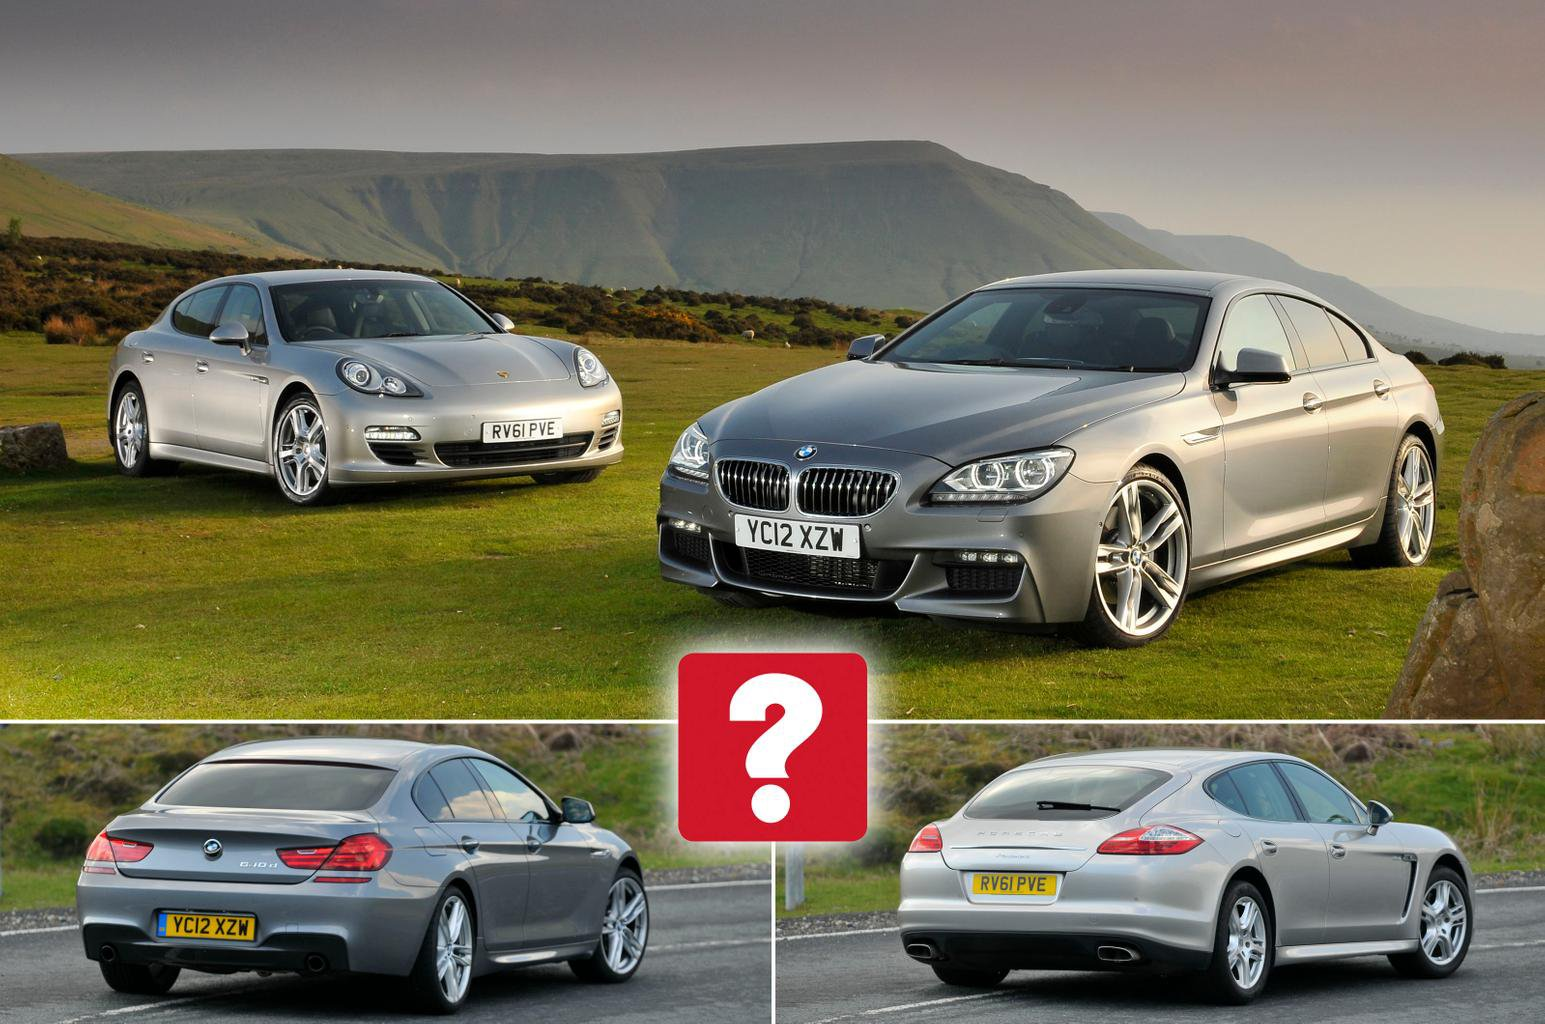 Used BMW 6 Series Gran Coupe vs Porsche Panamera